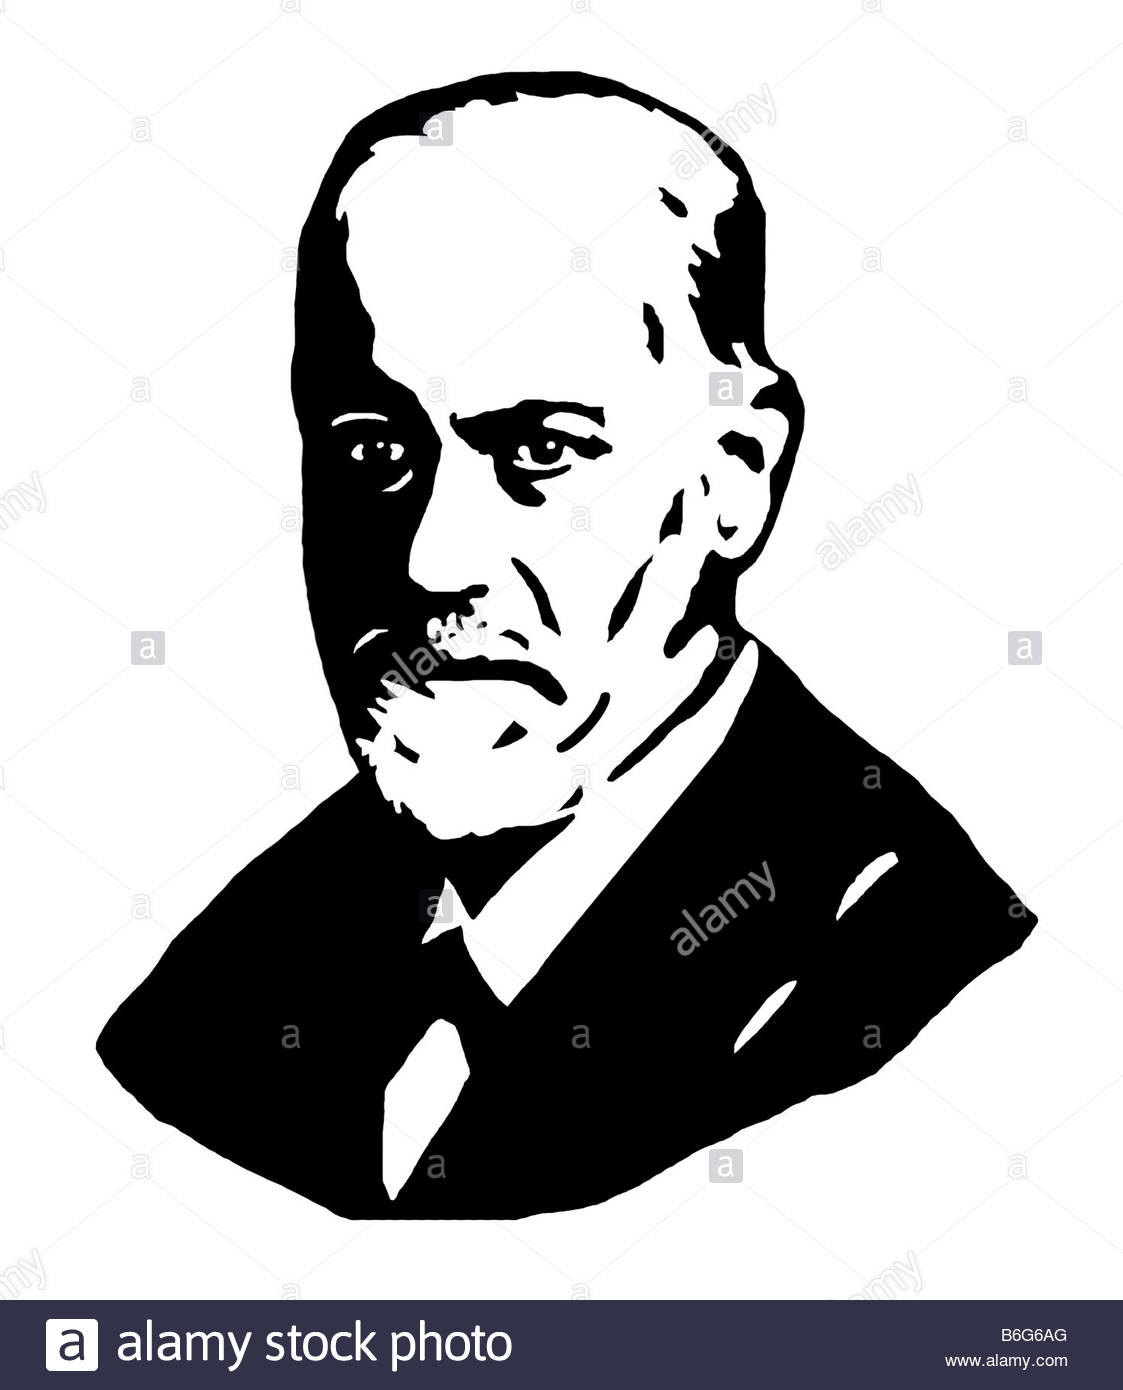 Freud Stock Photos & Freud Stock Images.